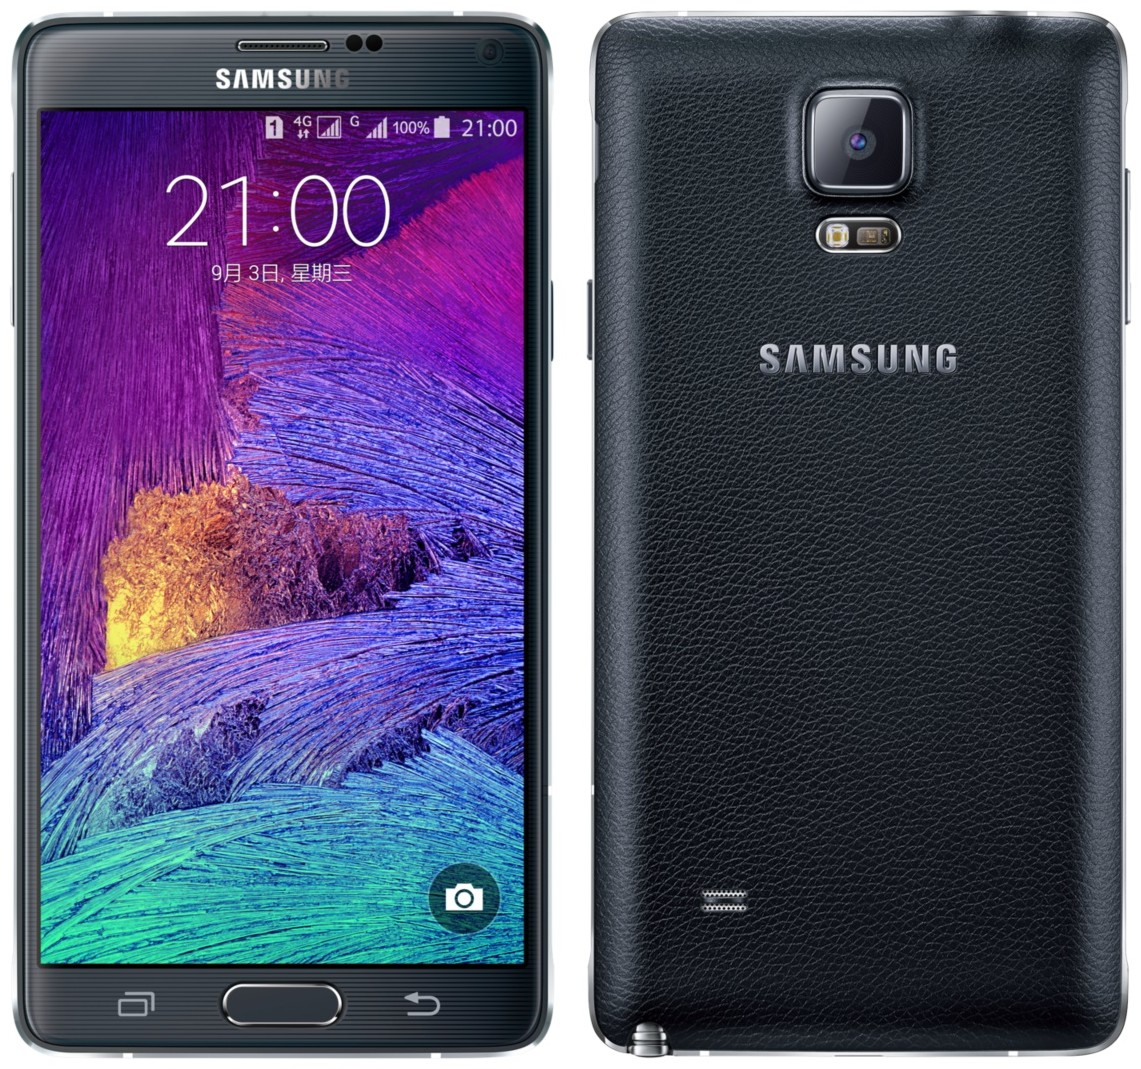 Cellular One Phones >> Samsung Galaxy Note 4 Duos - Specs and Price - Phonegg